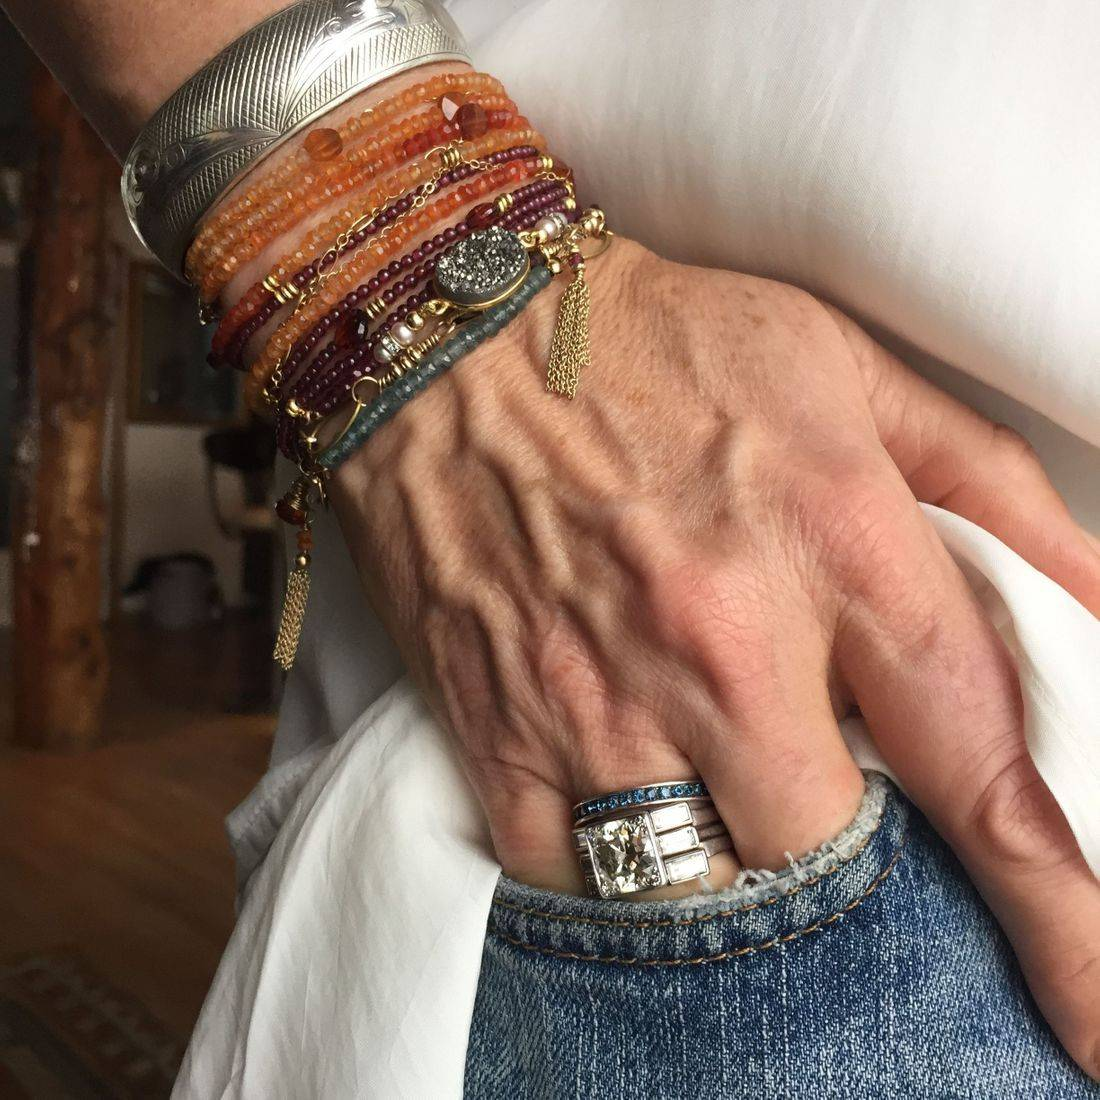 Three layered Gemstone wrap bracelets worn together.....very upscale tribal